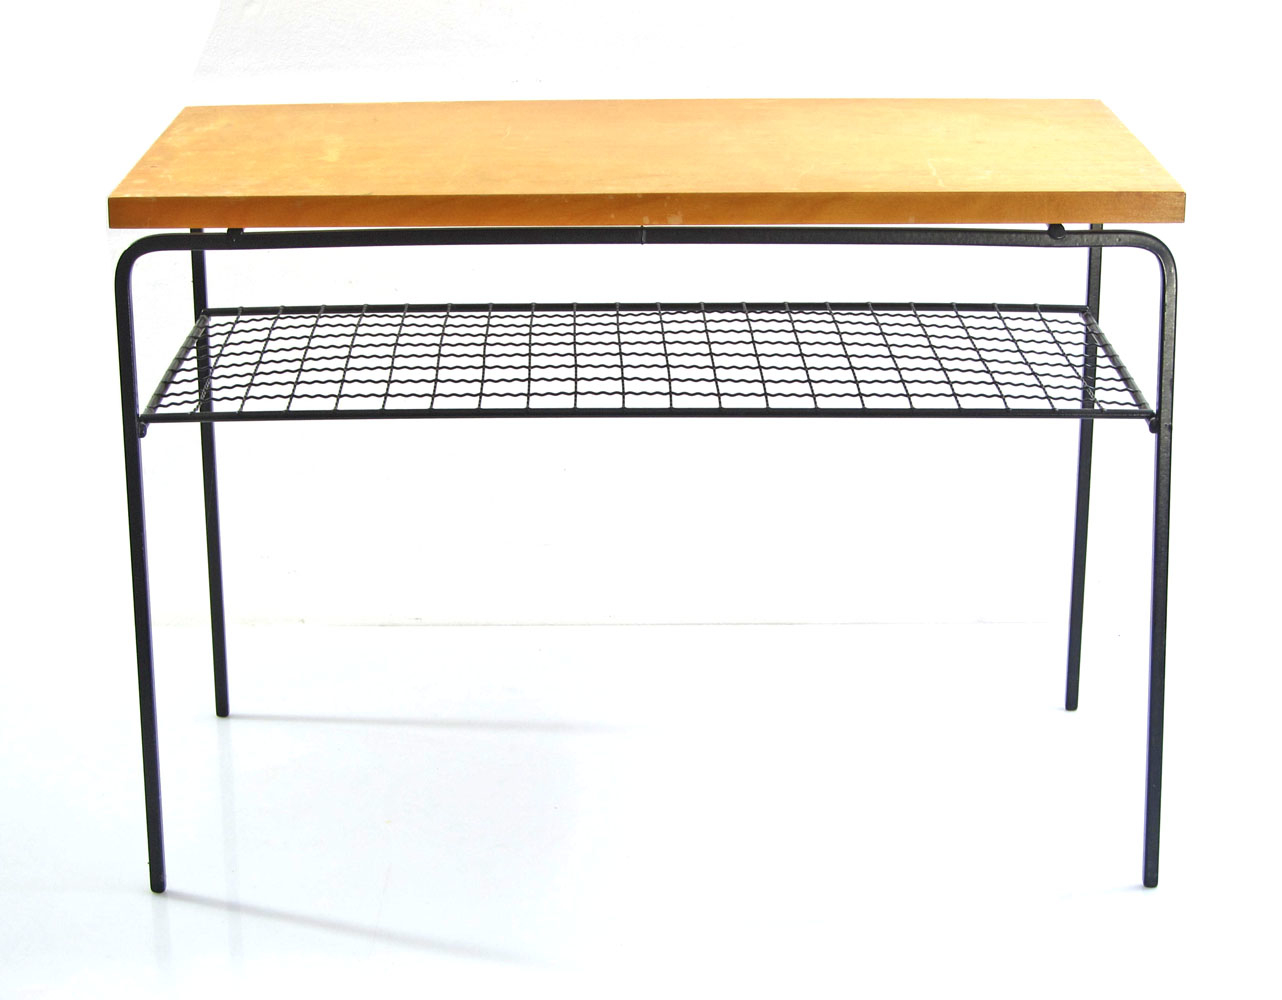 Vintage 50s side table by exqvisita style ab stockholm for Retro side table